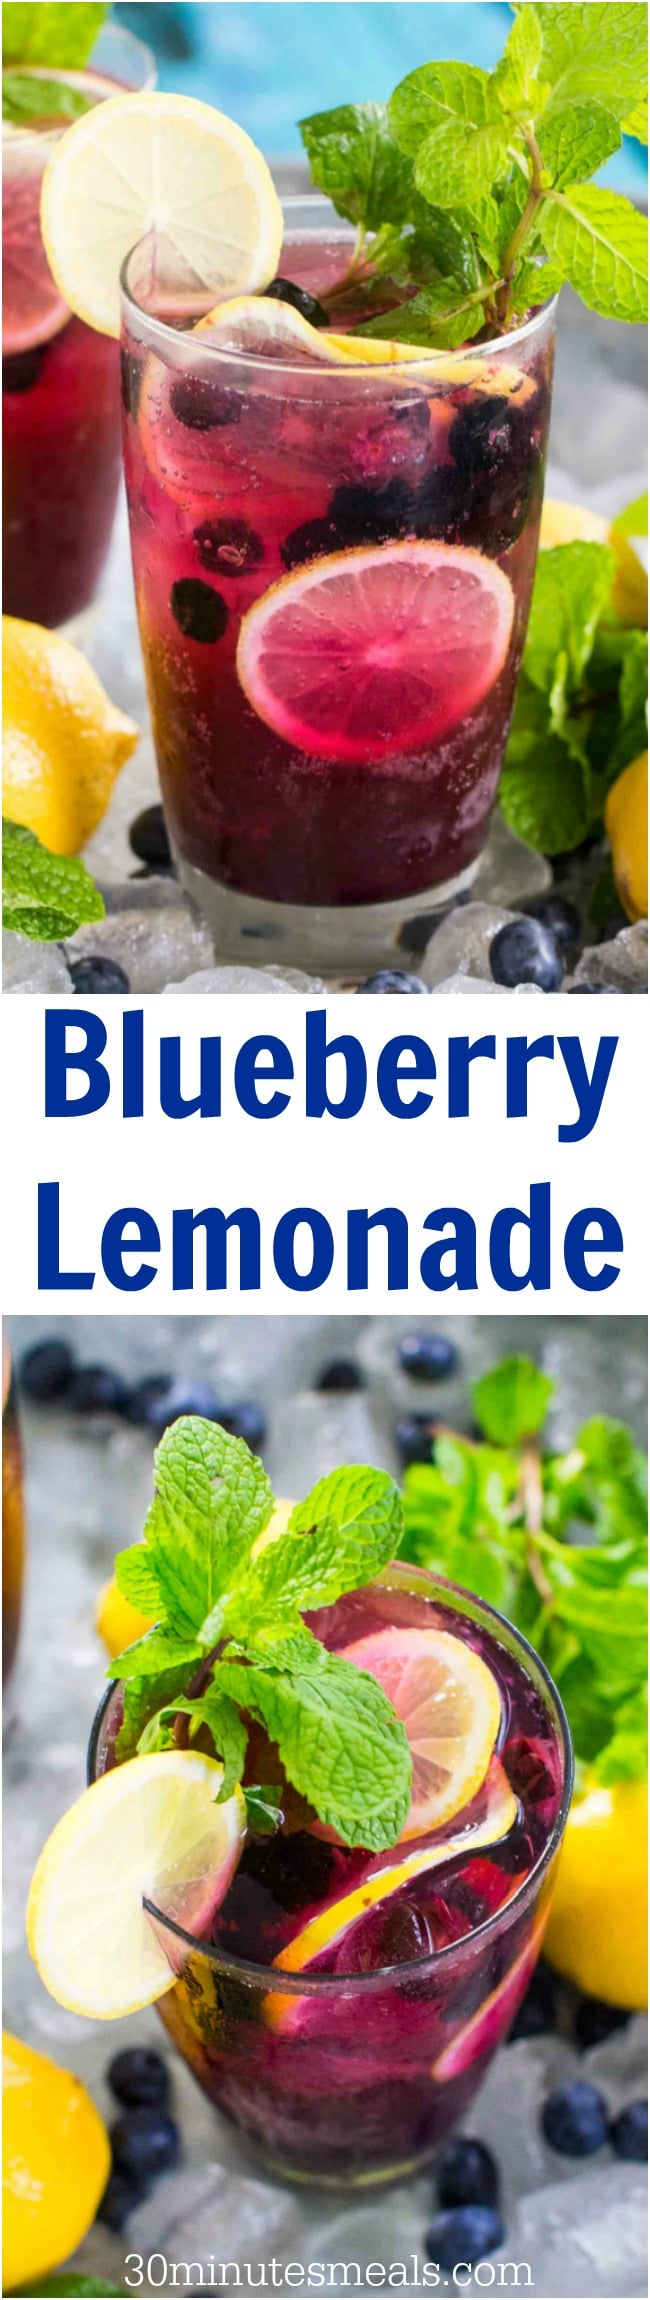 Blueberry Lemonade tastes delicious and refreshing year round. Made easy with sweet blueberry simple syrup and fresh lemon juice.